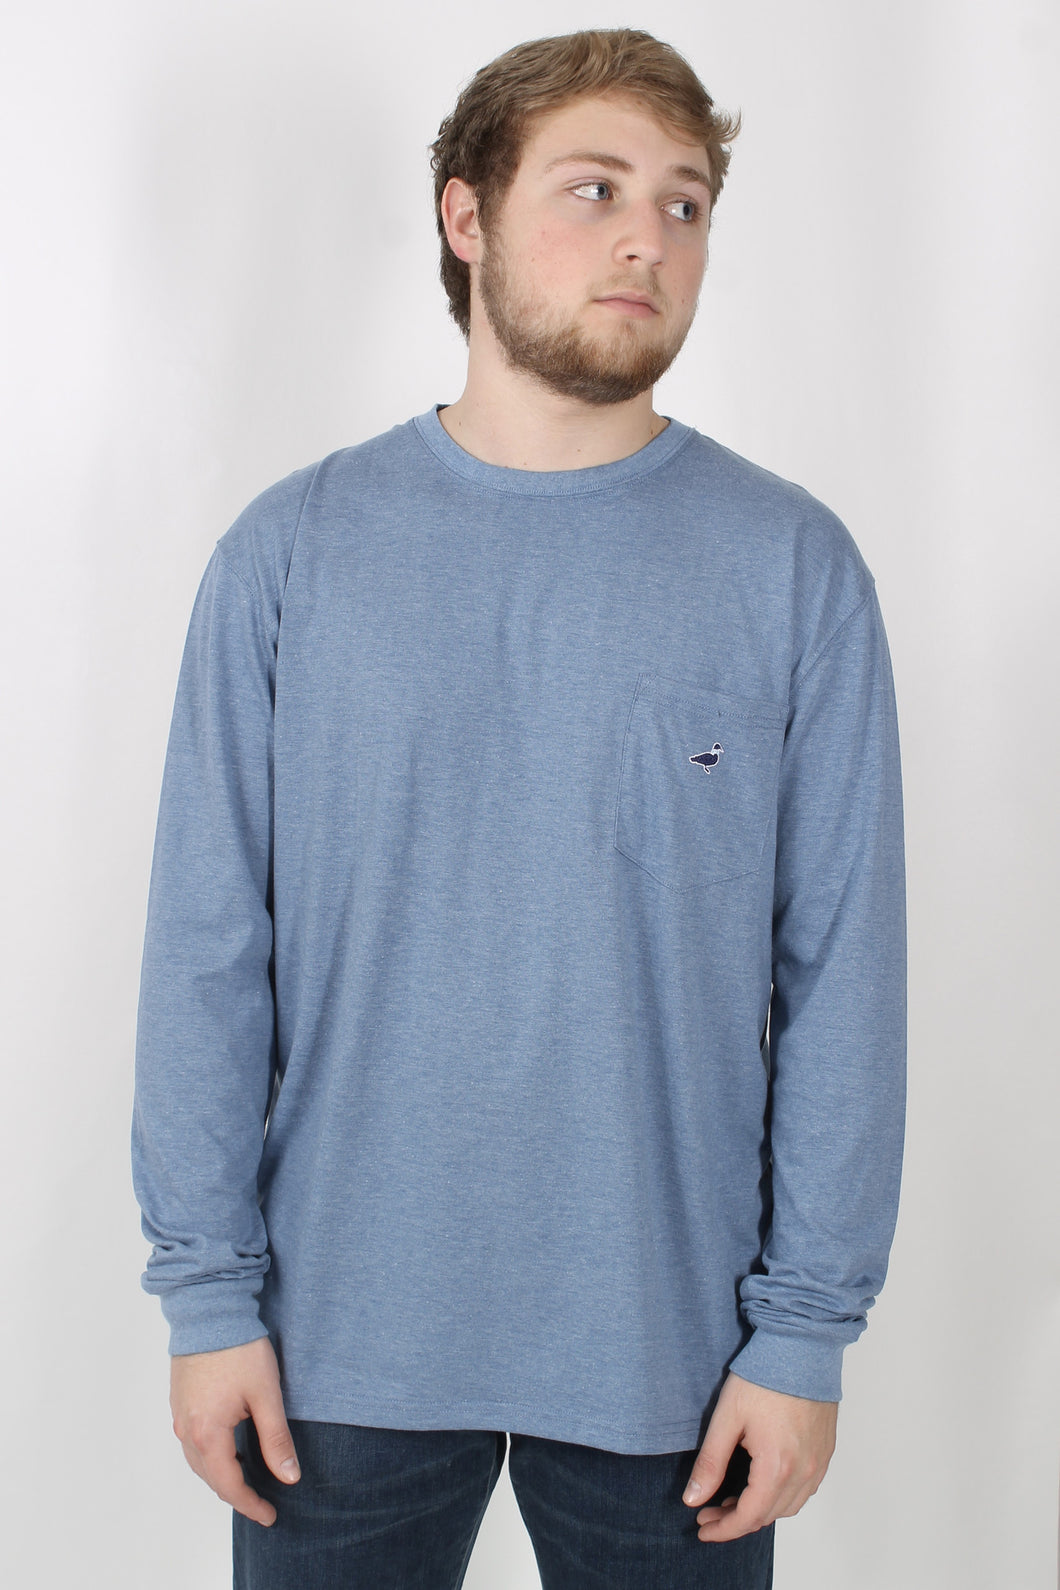 Denim Blue L/S- Properly Tied Embroidered Pocket Tee Front